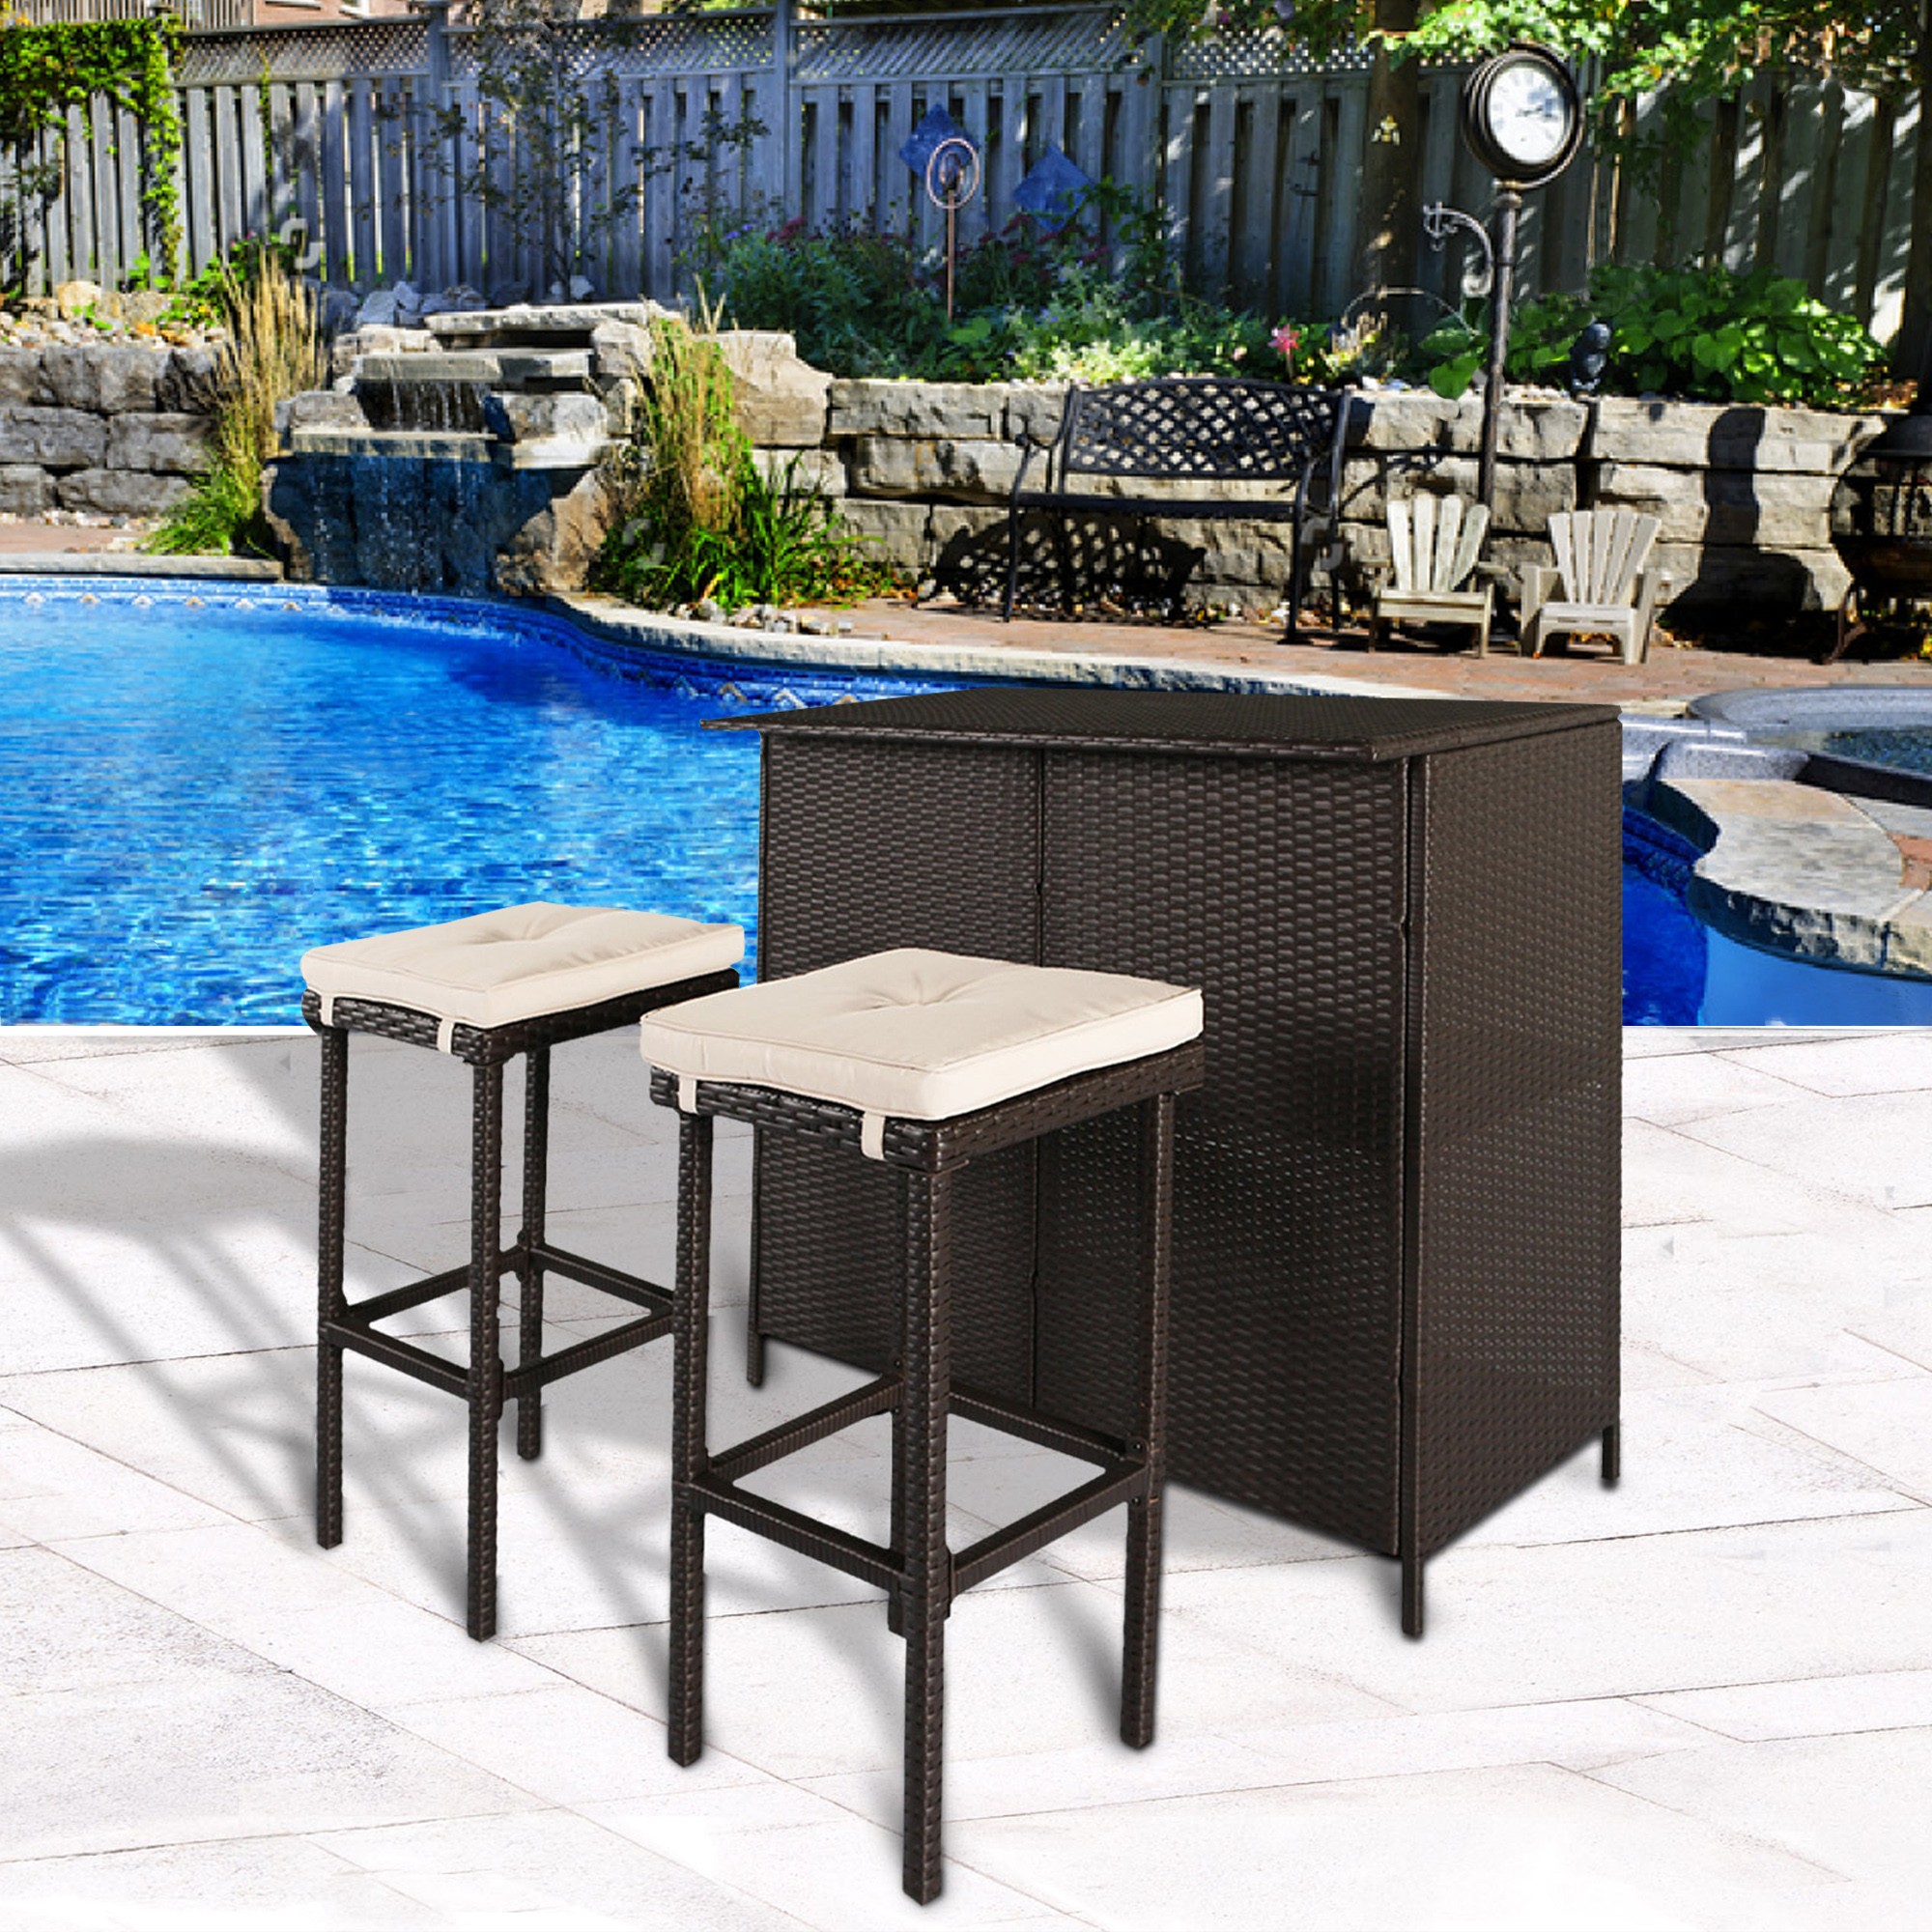 Charmant 3 PC Outdoor Patio Bar Set Table 2 Stools Barstool Furniture Set,Creamy  White Cushion